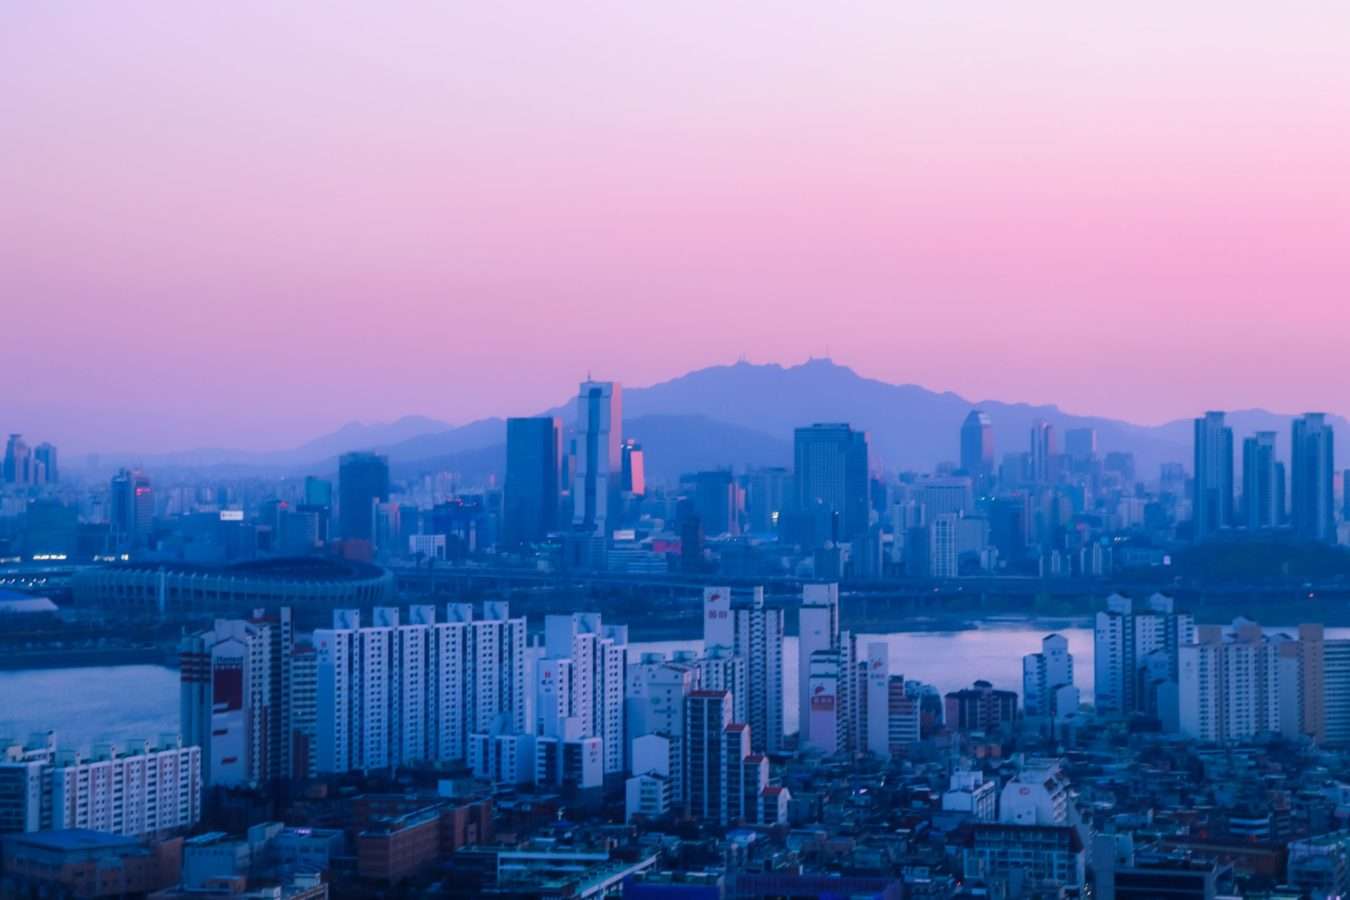 The Korean pink sky trend that's showing up all over your Instagram feed